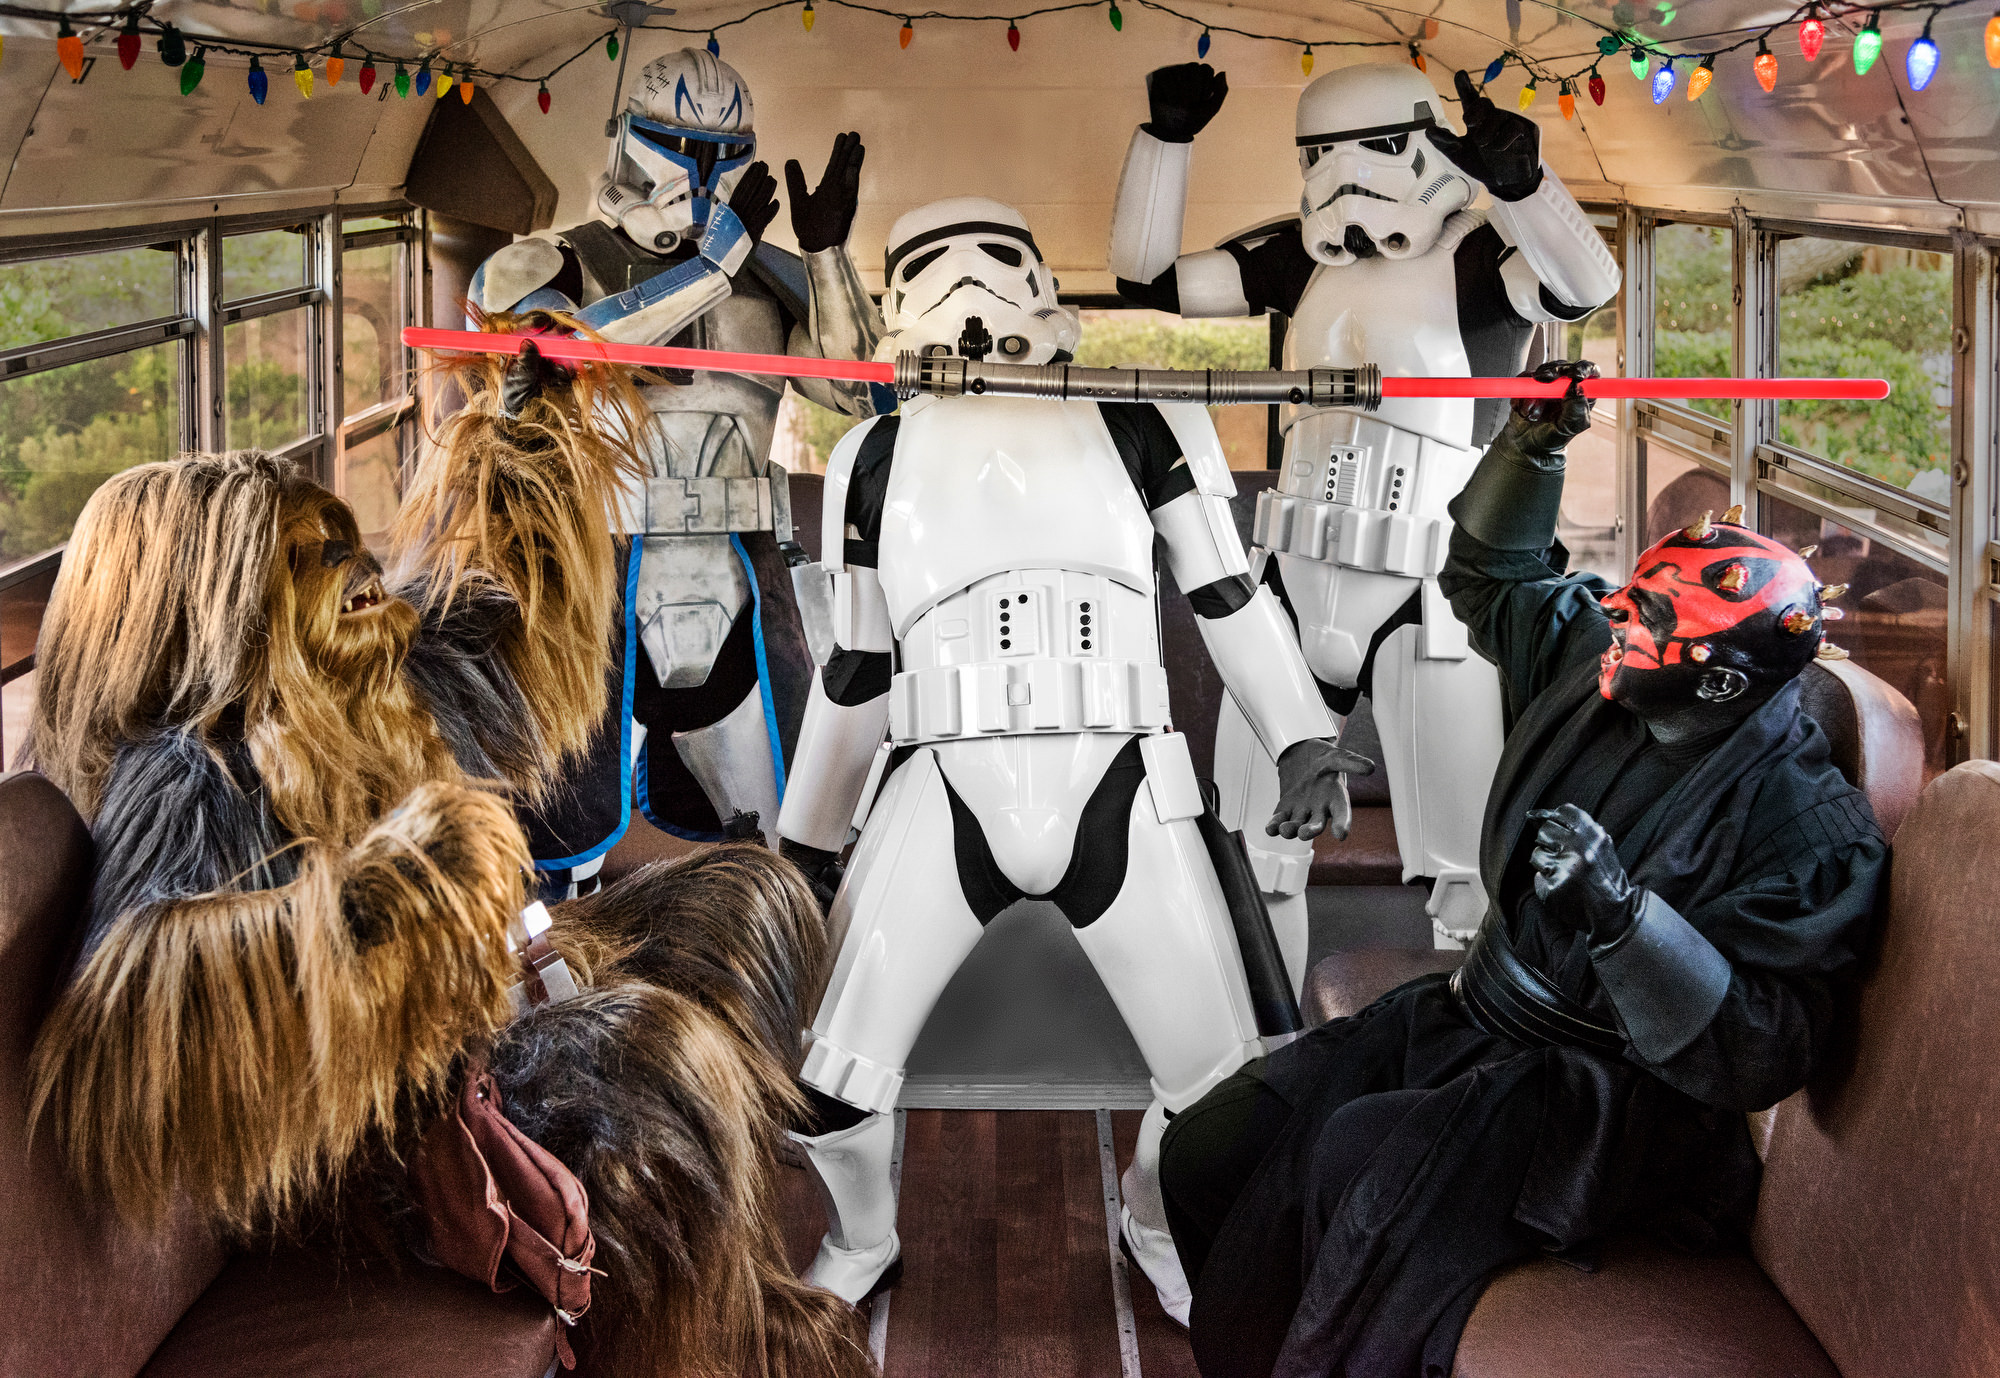 Storm Trooper does the limbo at Star Wars wedding - photo by Jerry Ghionis